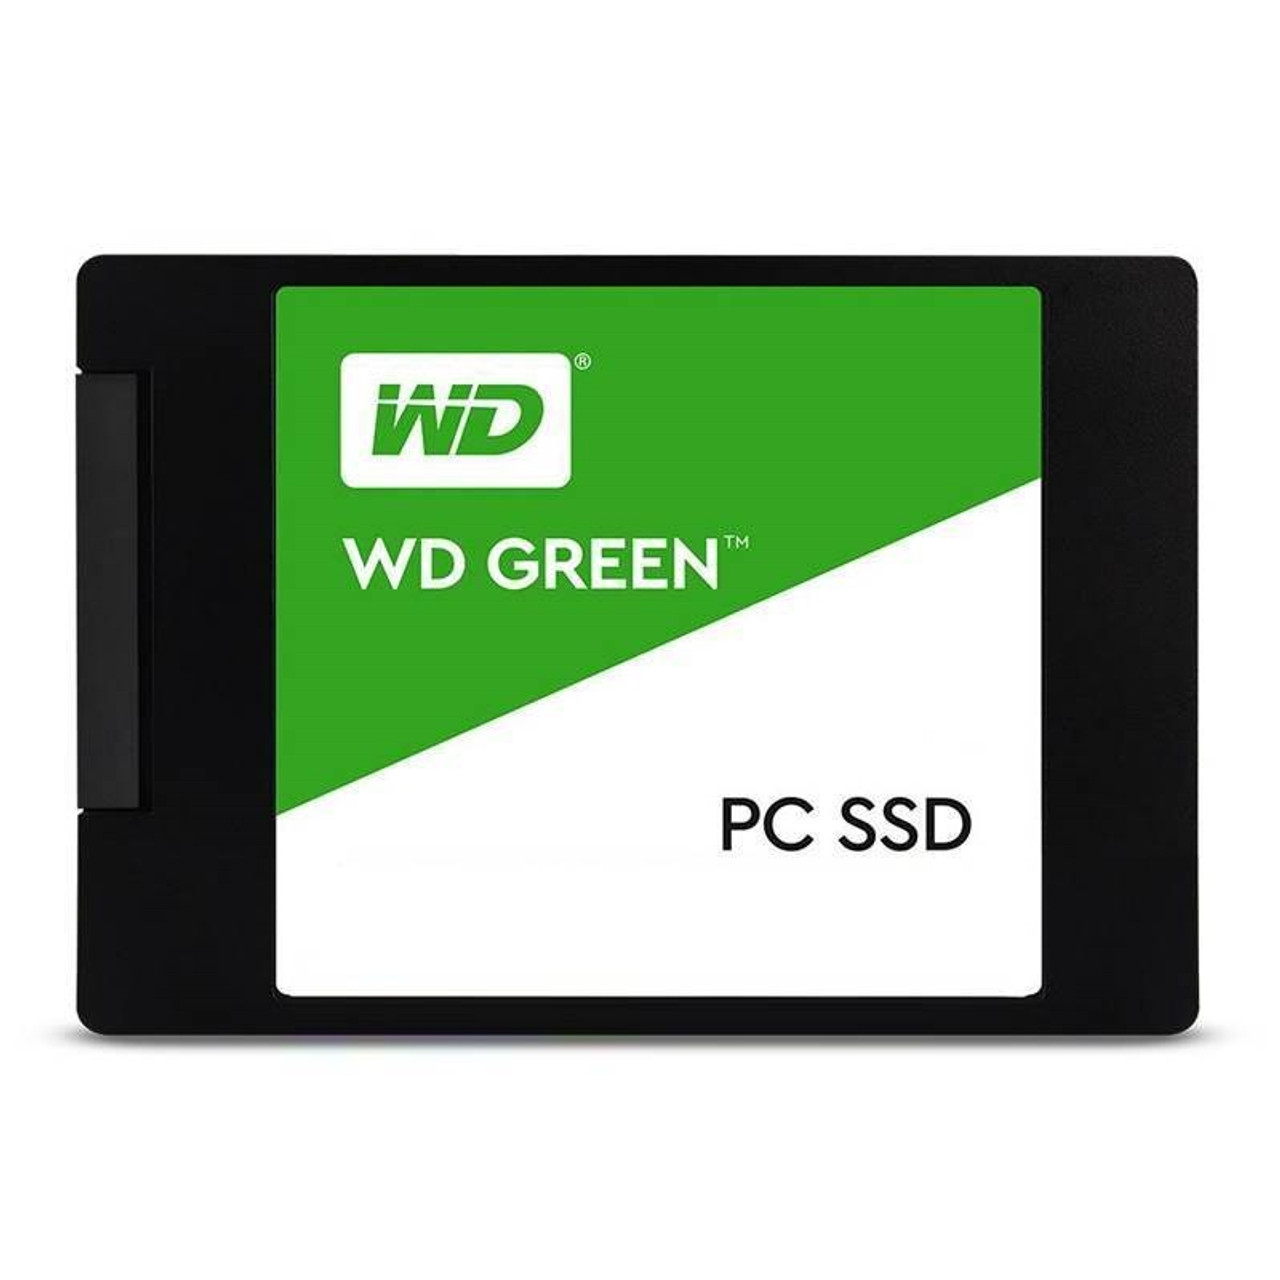 Image for Western Digital WD Green 2TB 2.5in SATA III 3D NAND SSD WDS200T2G0A CX Computer Superstore